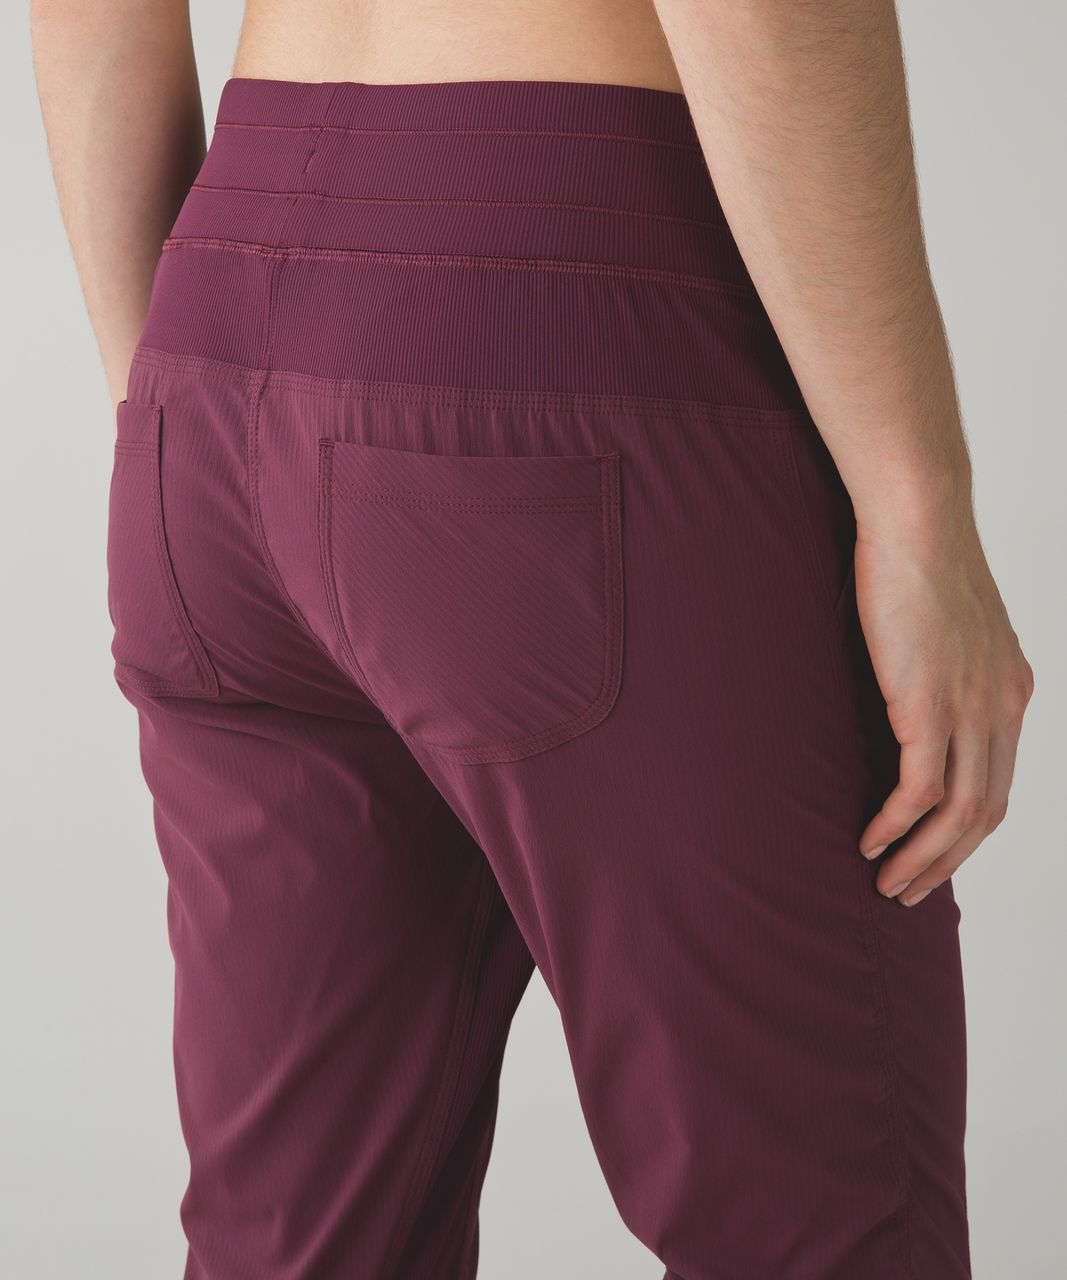 Lululemon Street To Studio Pant II - Red Grape